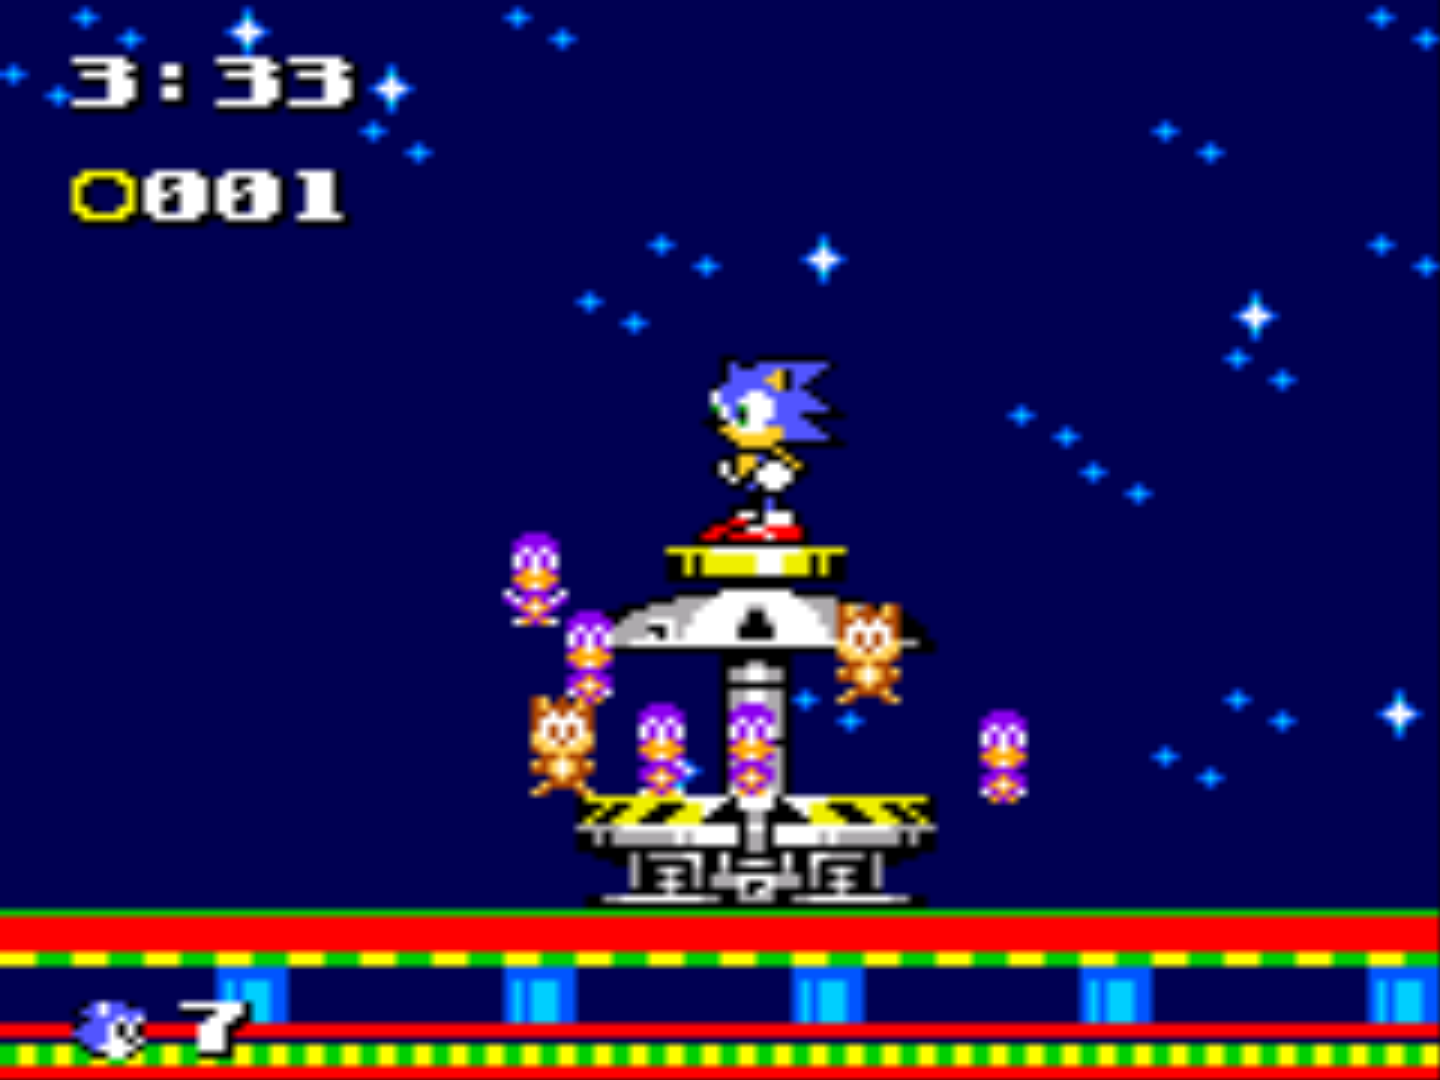 Sonic the Hedgehog Pocket Adventure (NGPC): COMPLETED!